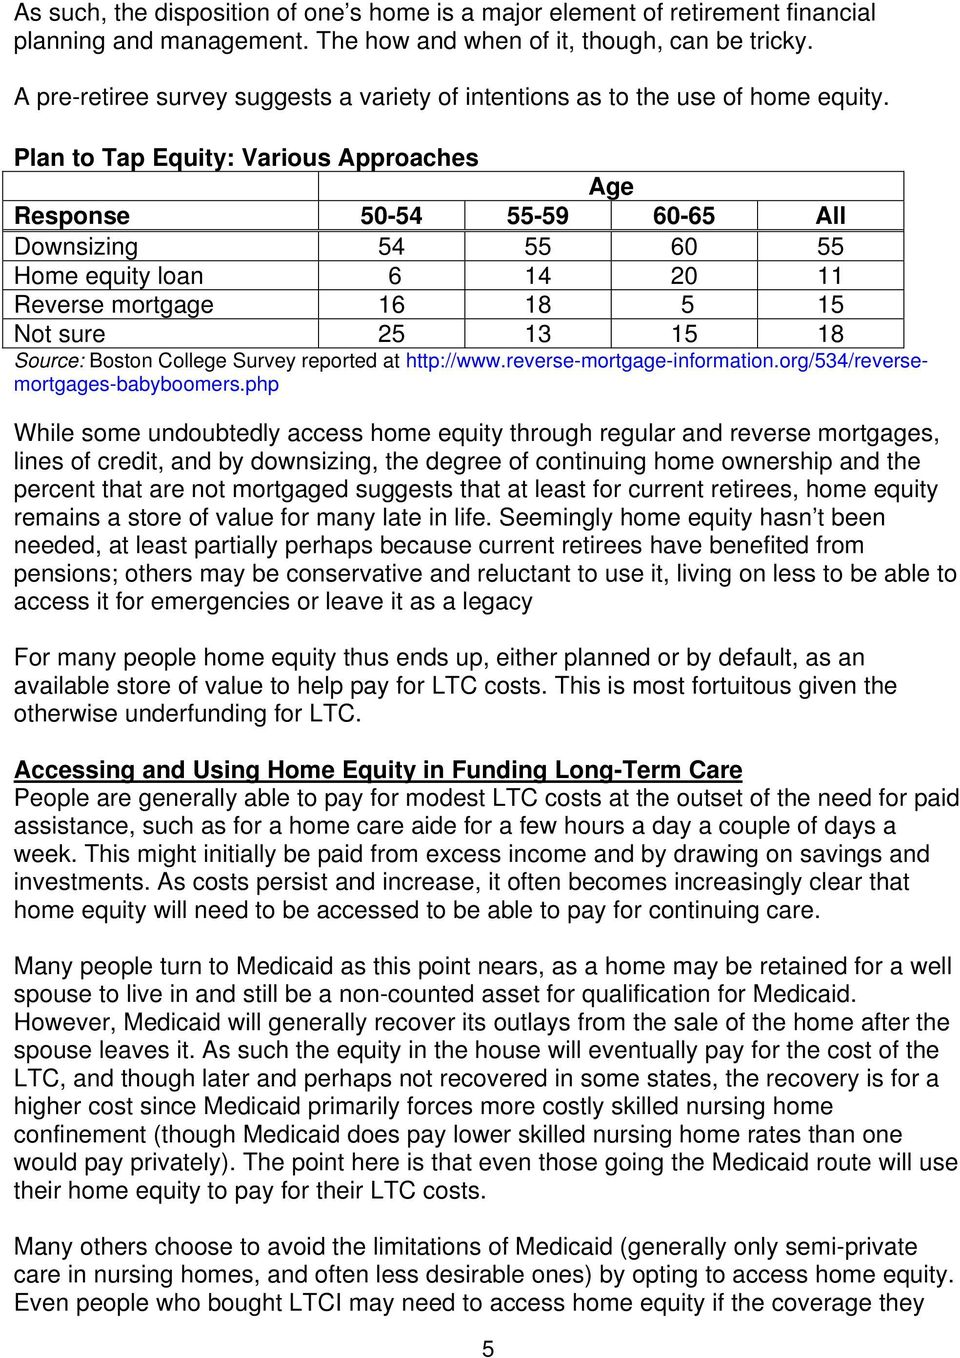 Plan to Tap Equity: Various Approaches Age Response 50-54 55-59 60-65 All Downsizing 54 55 60 55 Home equity loan 6 14 20 11 Reverse mortgage 16 18 5 15 Not sure 25 13 15 18 Source: Boston College